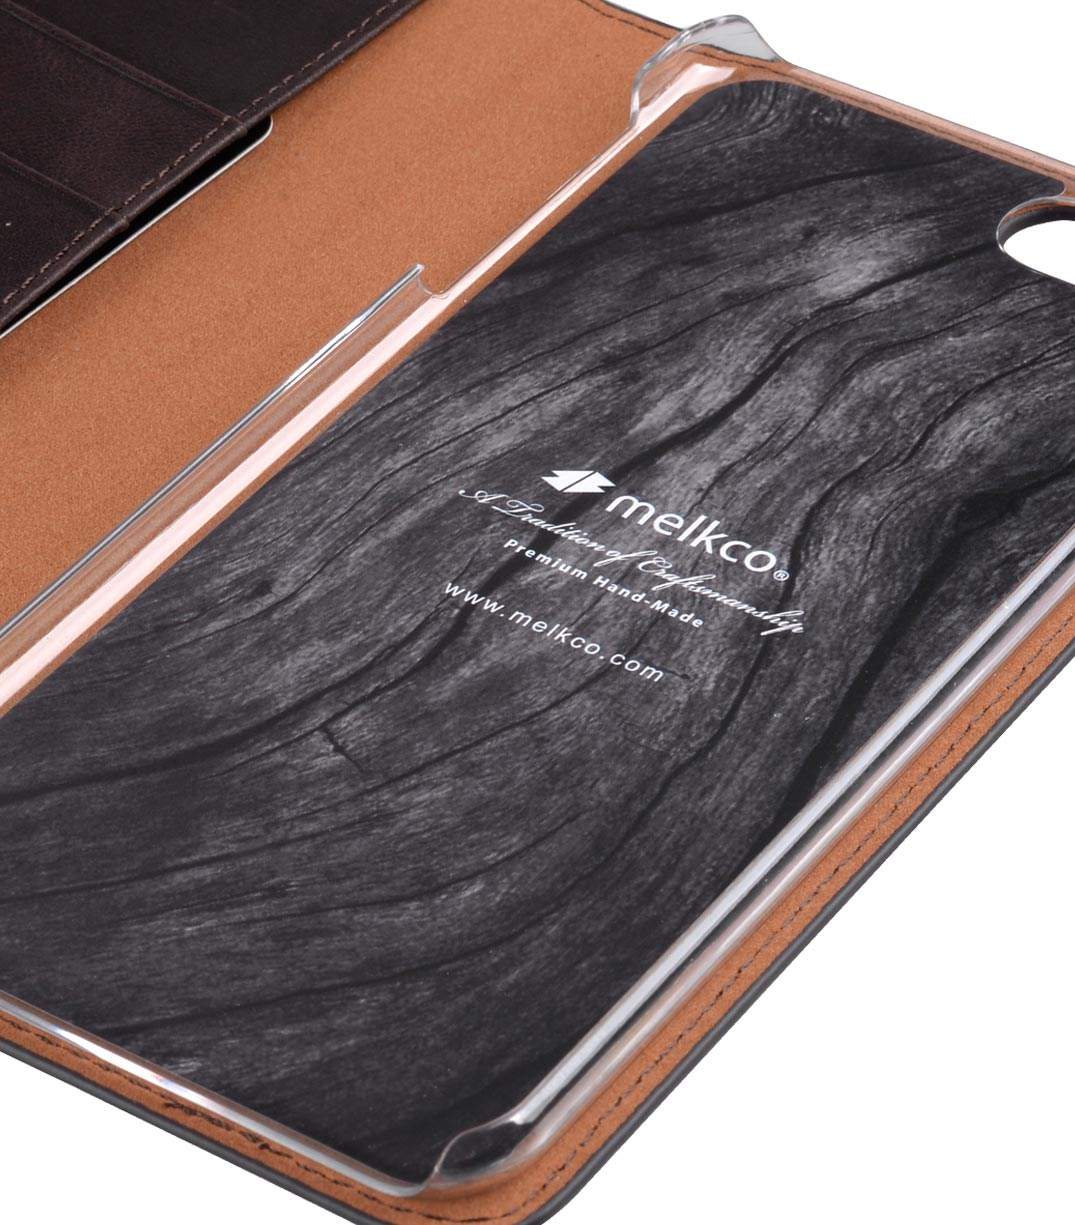 "Melkco Premium Cowhide Leather Herman Series Book Style Case for Apple iPhone 7 / 8 Plus (5.5"") (Coffee)"